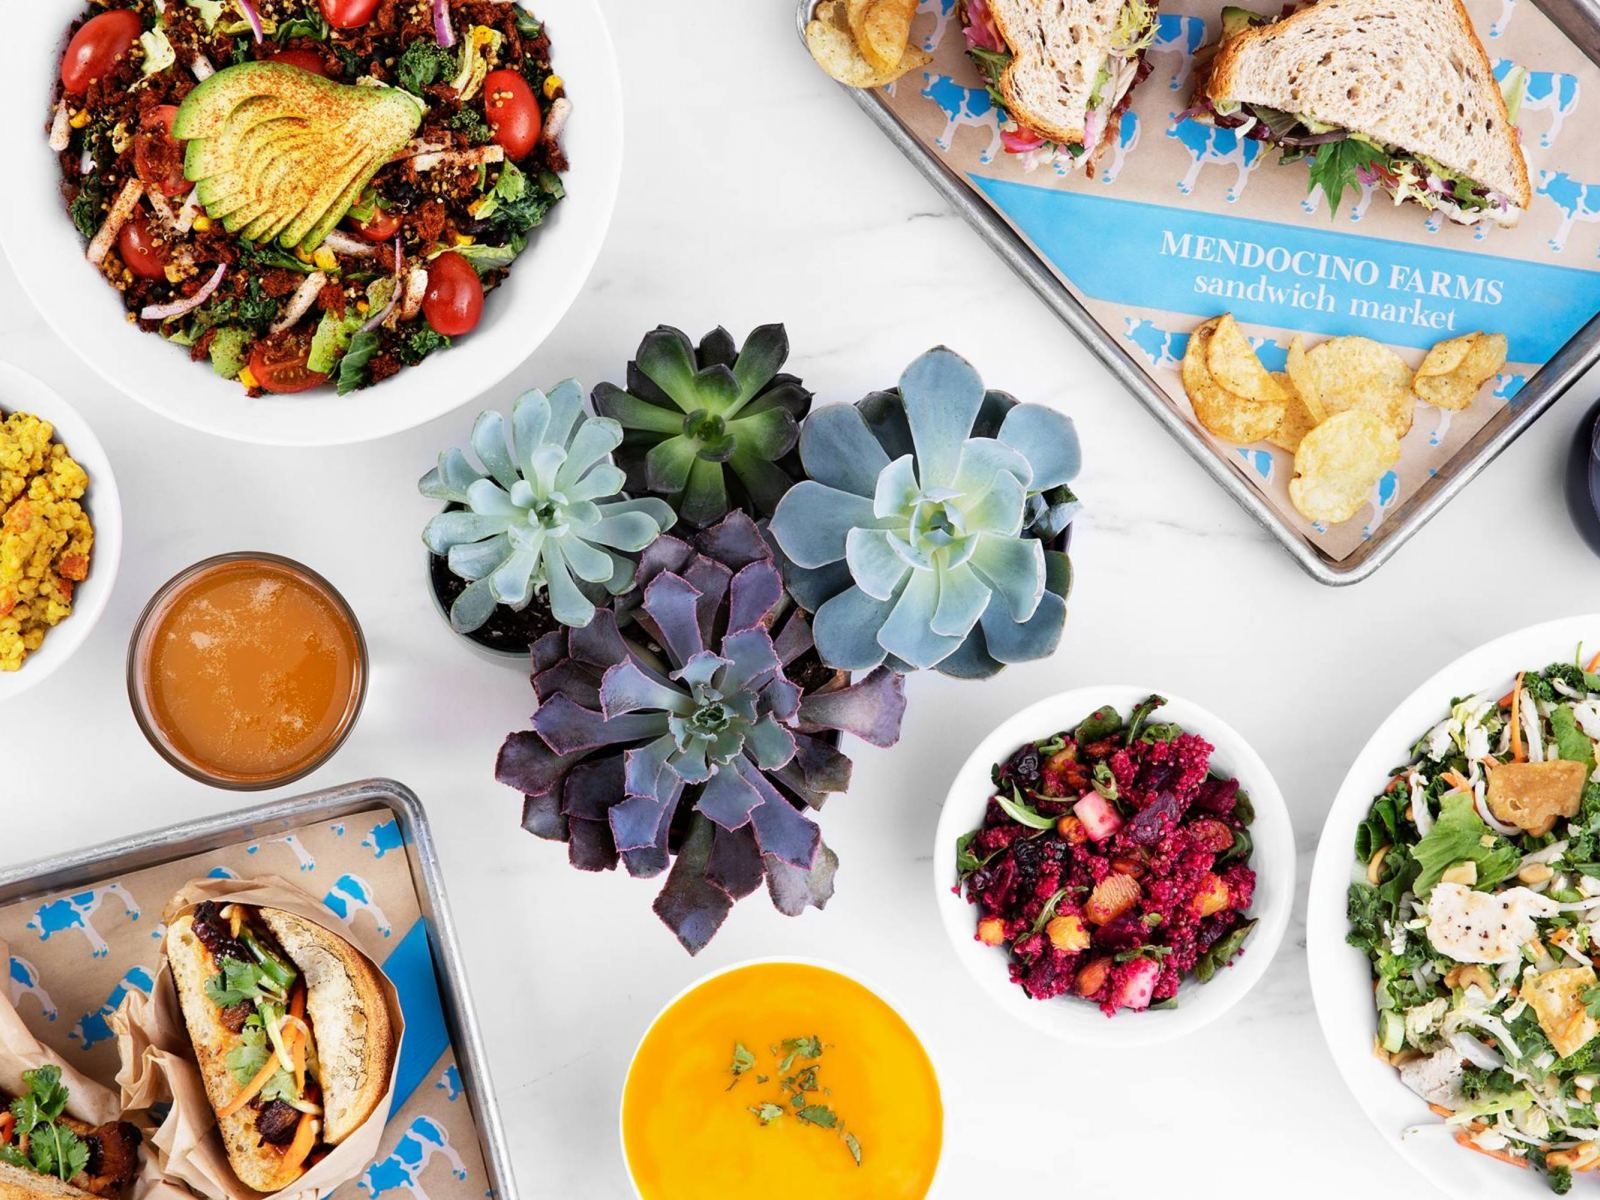 Mendocino Farms – Sherman Oaks